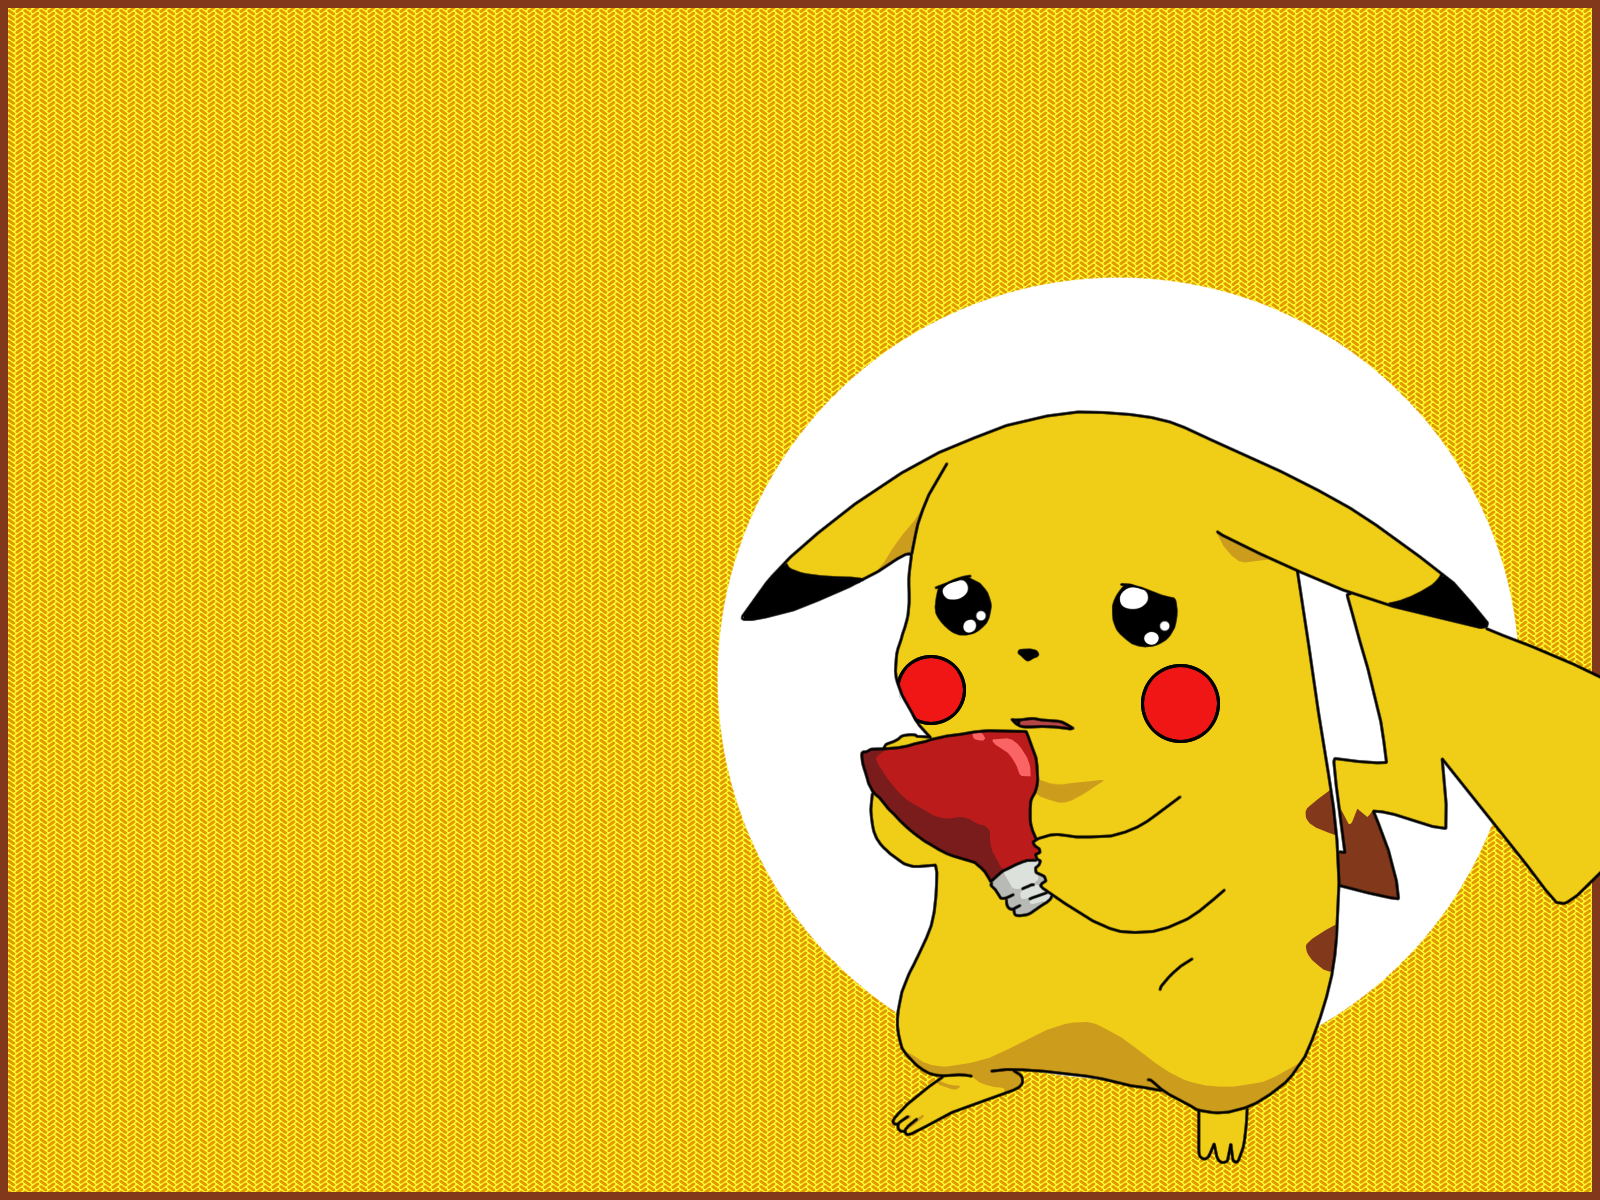 Pin by Tejasvini Chhibber on Pikachu Pikachu wallpaper